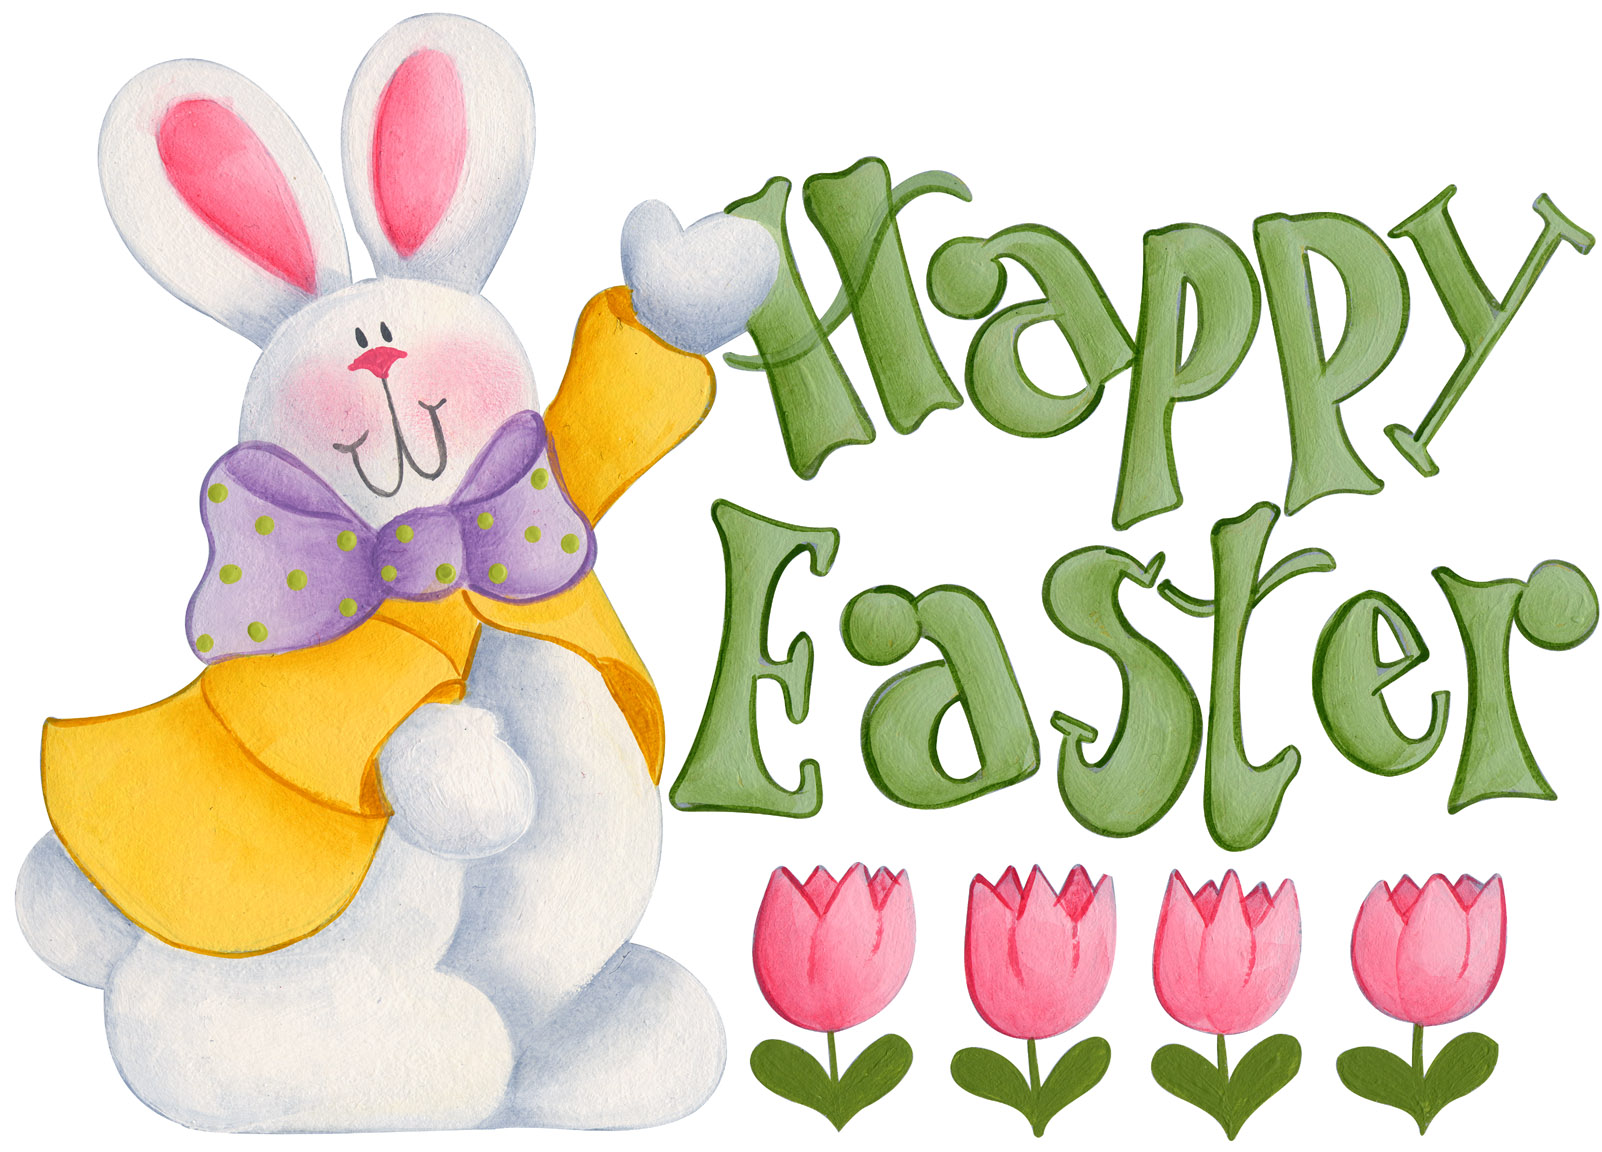 Happy Easter Image 2019